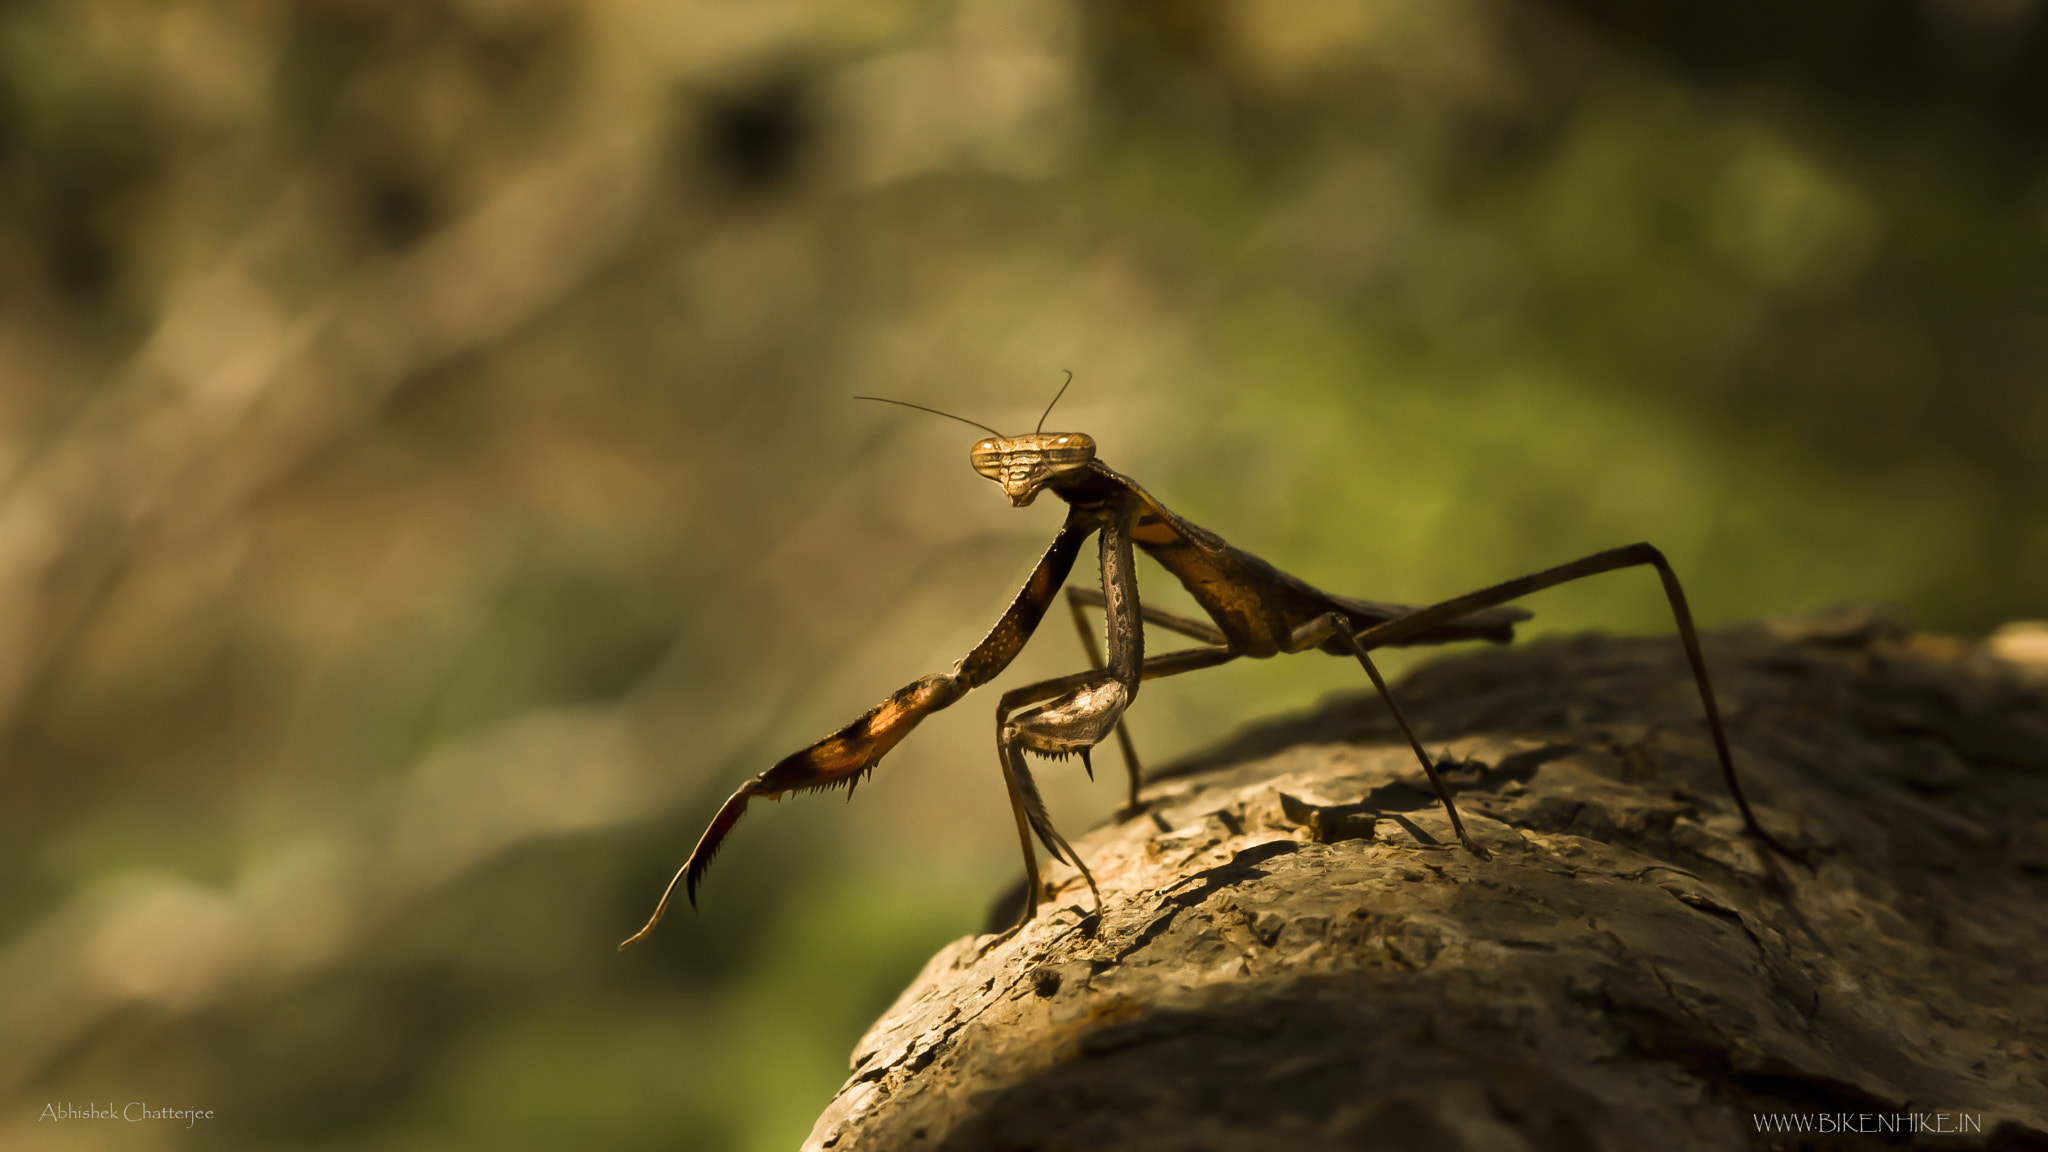 Photograph mantis...in the wild by Abhishek Chatterjee on 500px